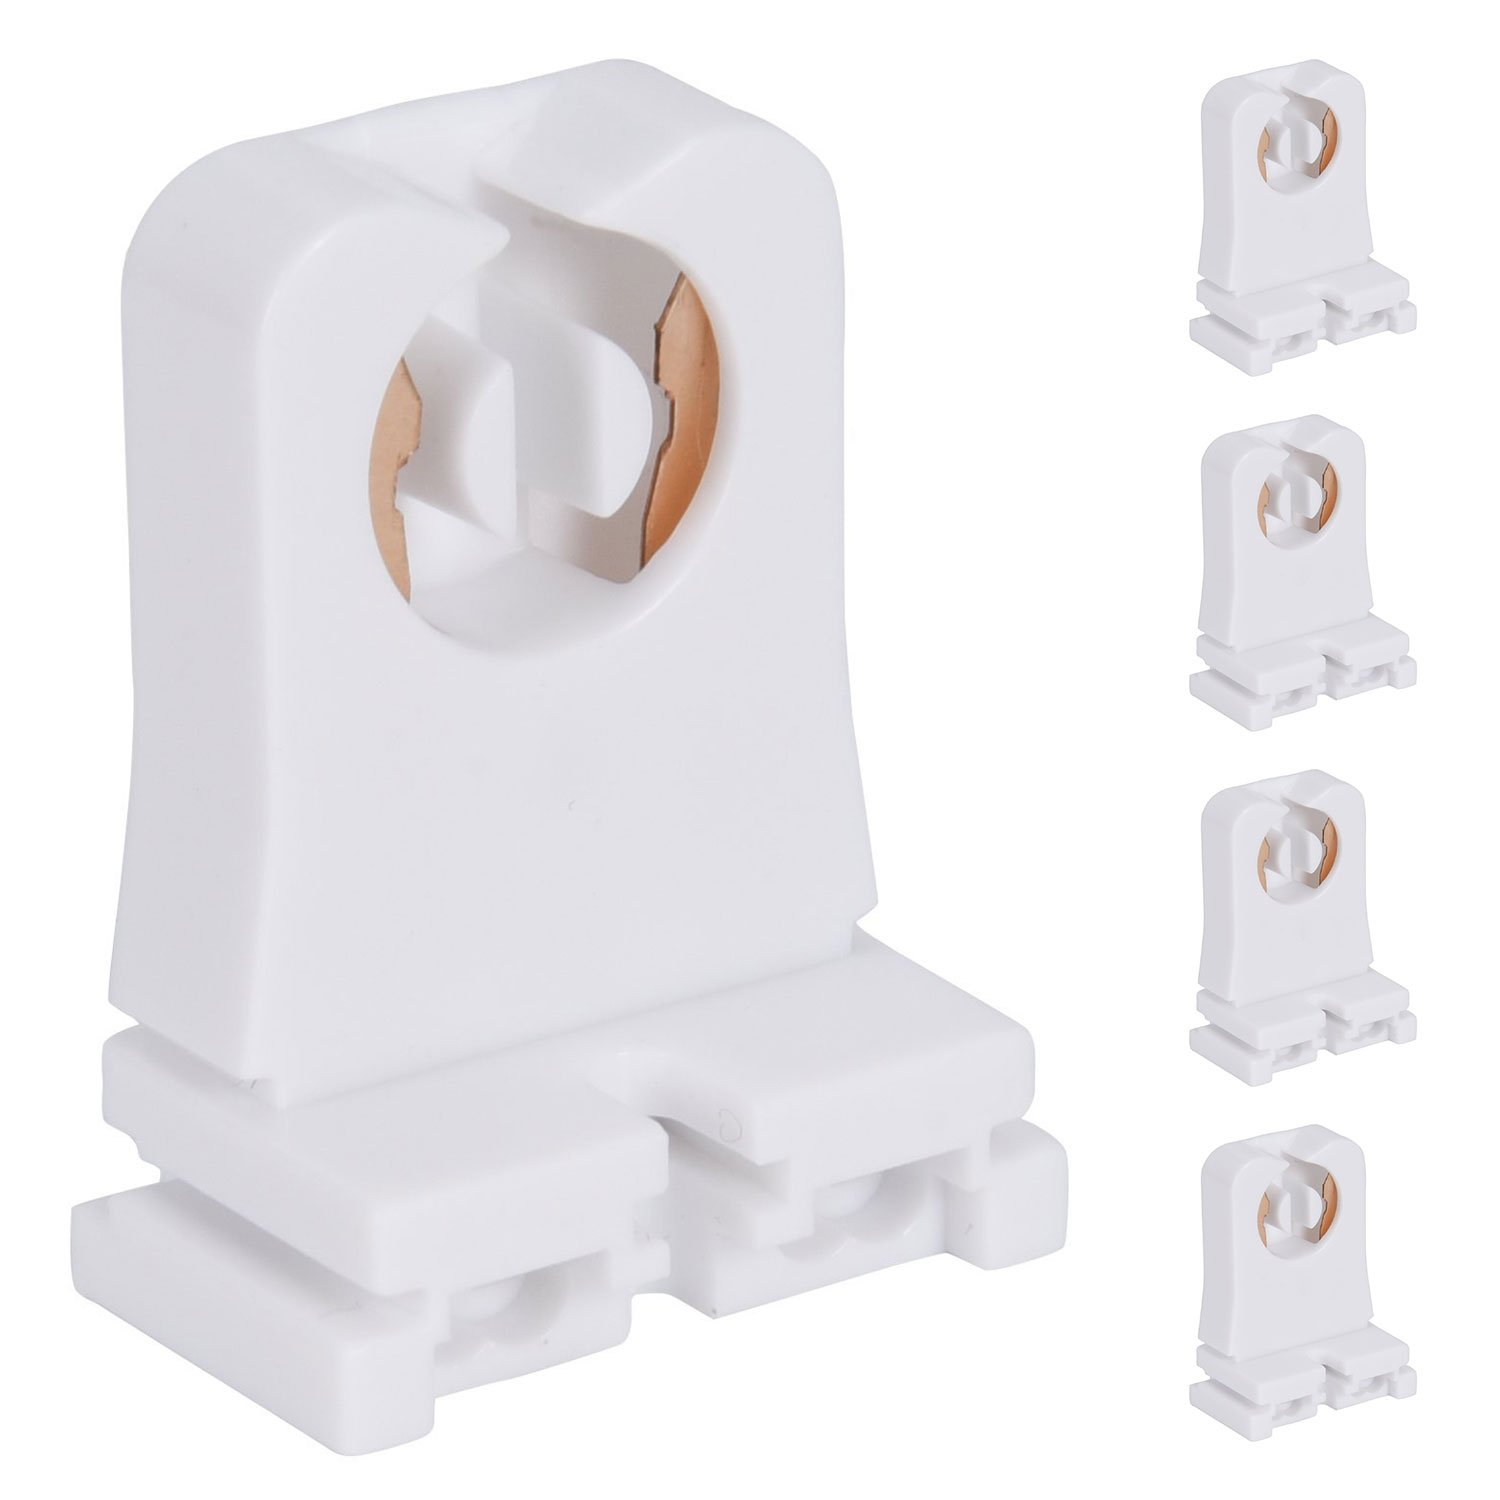 Non-shunted Turn Type T8 Lamp Holder JACKYLED 4-Pack UL Socket Tombstone for LED Fluorescent Tube Replacements Medium Bi-pin Socket for Programmed Start Ballasts